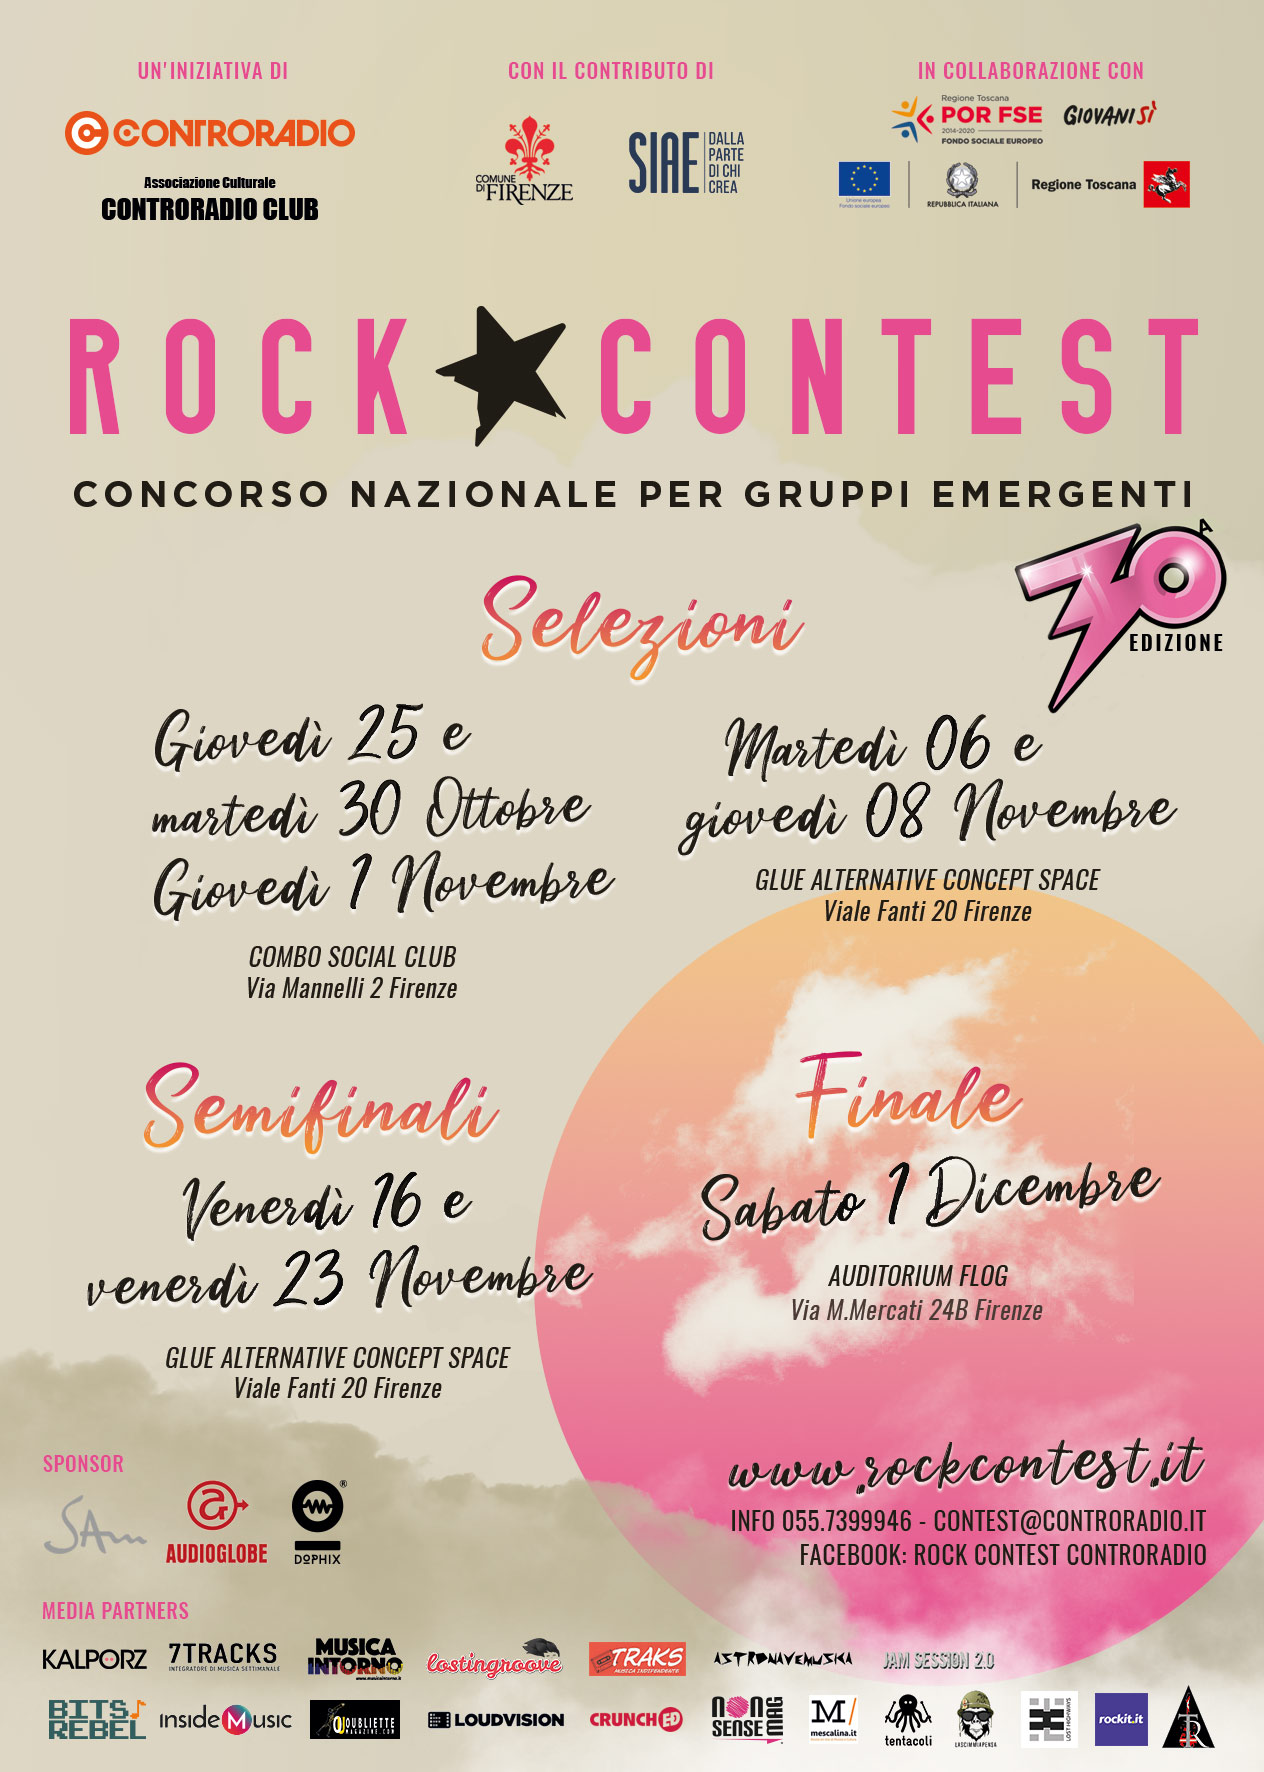 rockcontest_2018_flyer_retro